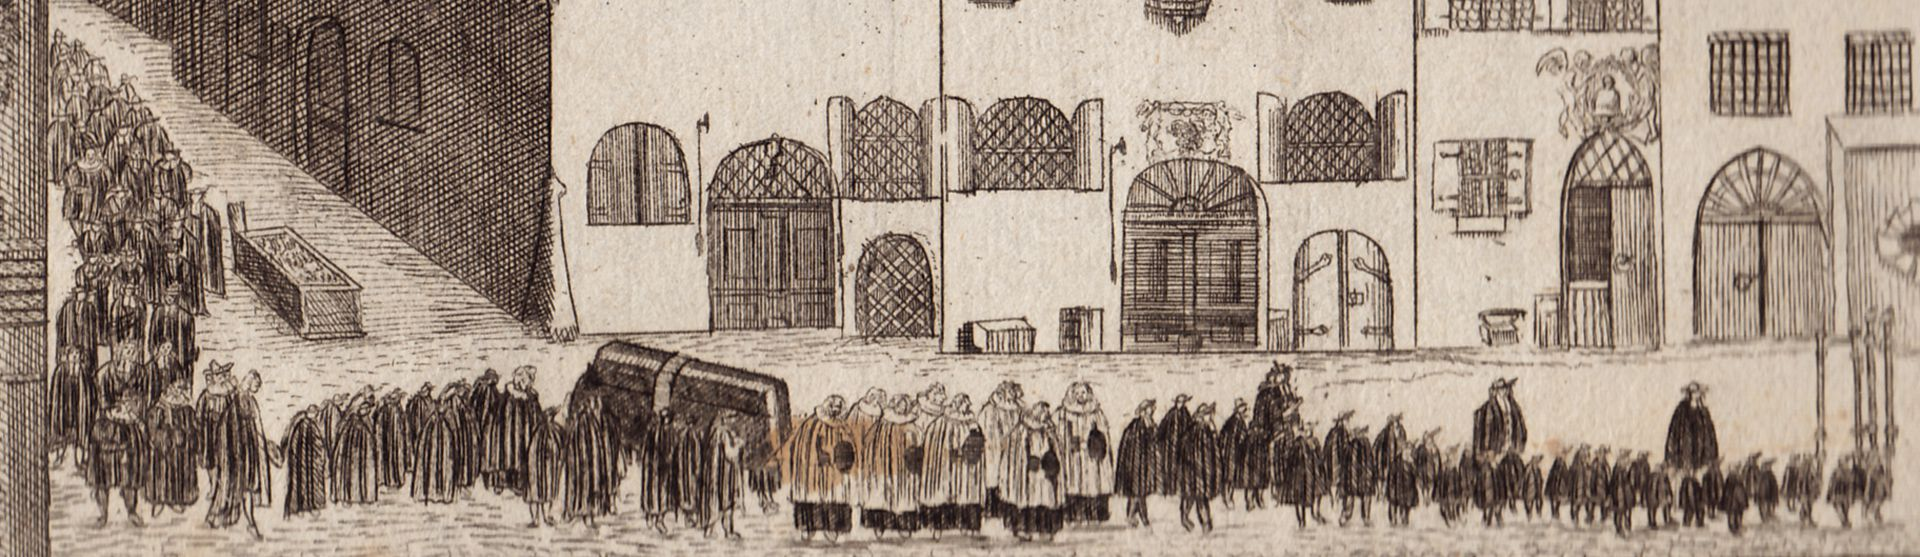 Prospect of the Rossmarkt (Horsemarket) to the Barfüßerbrücke (Grey Friars' Bridge) with funeral procession Funeral procession